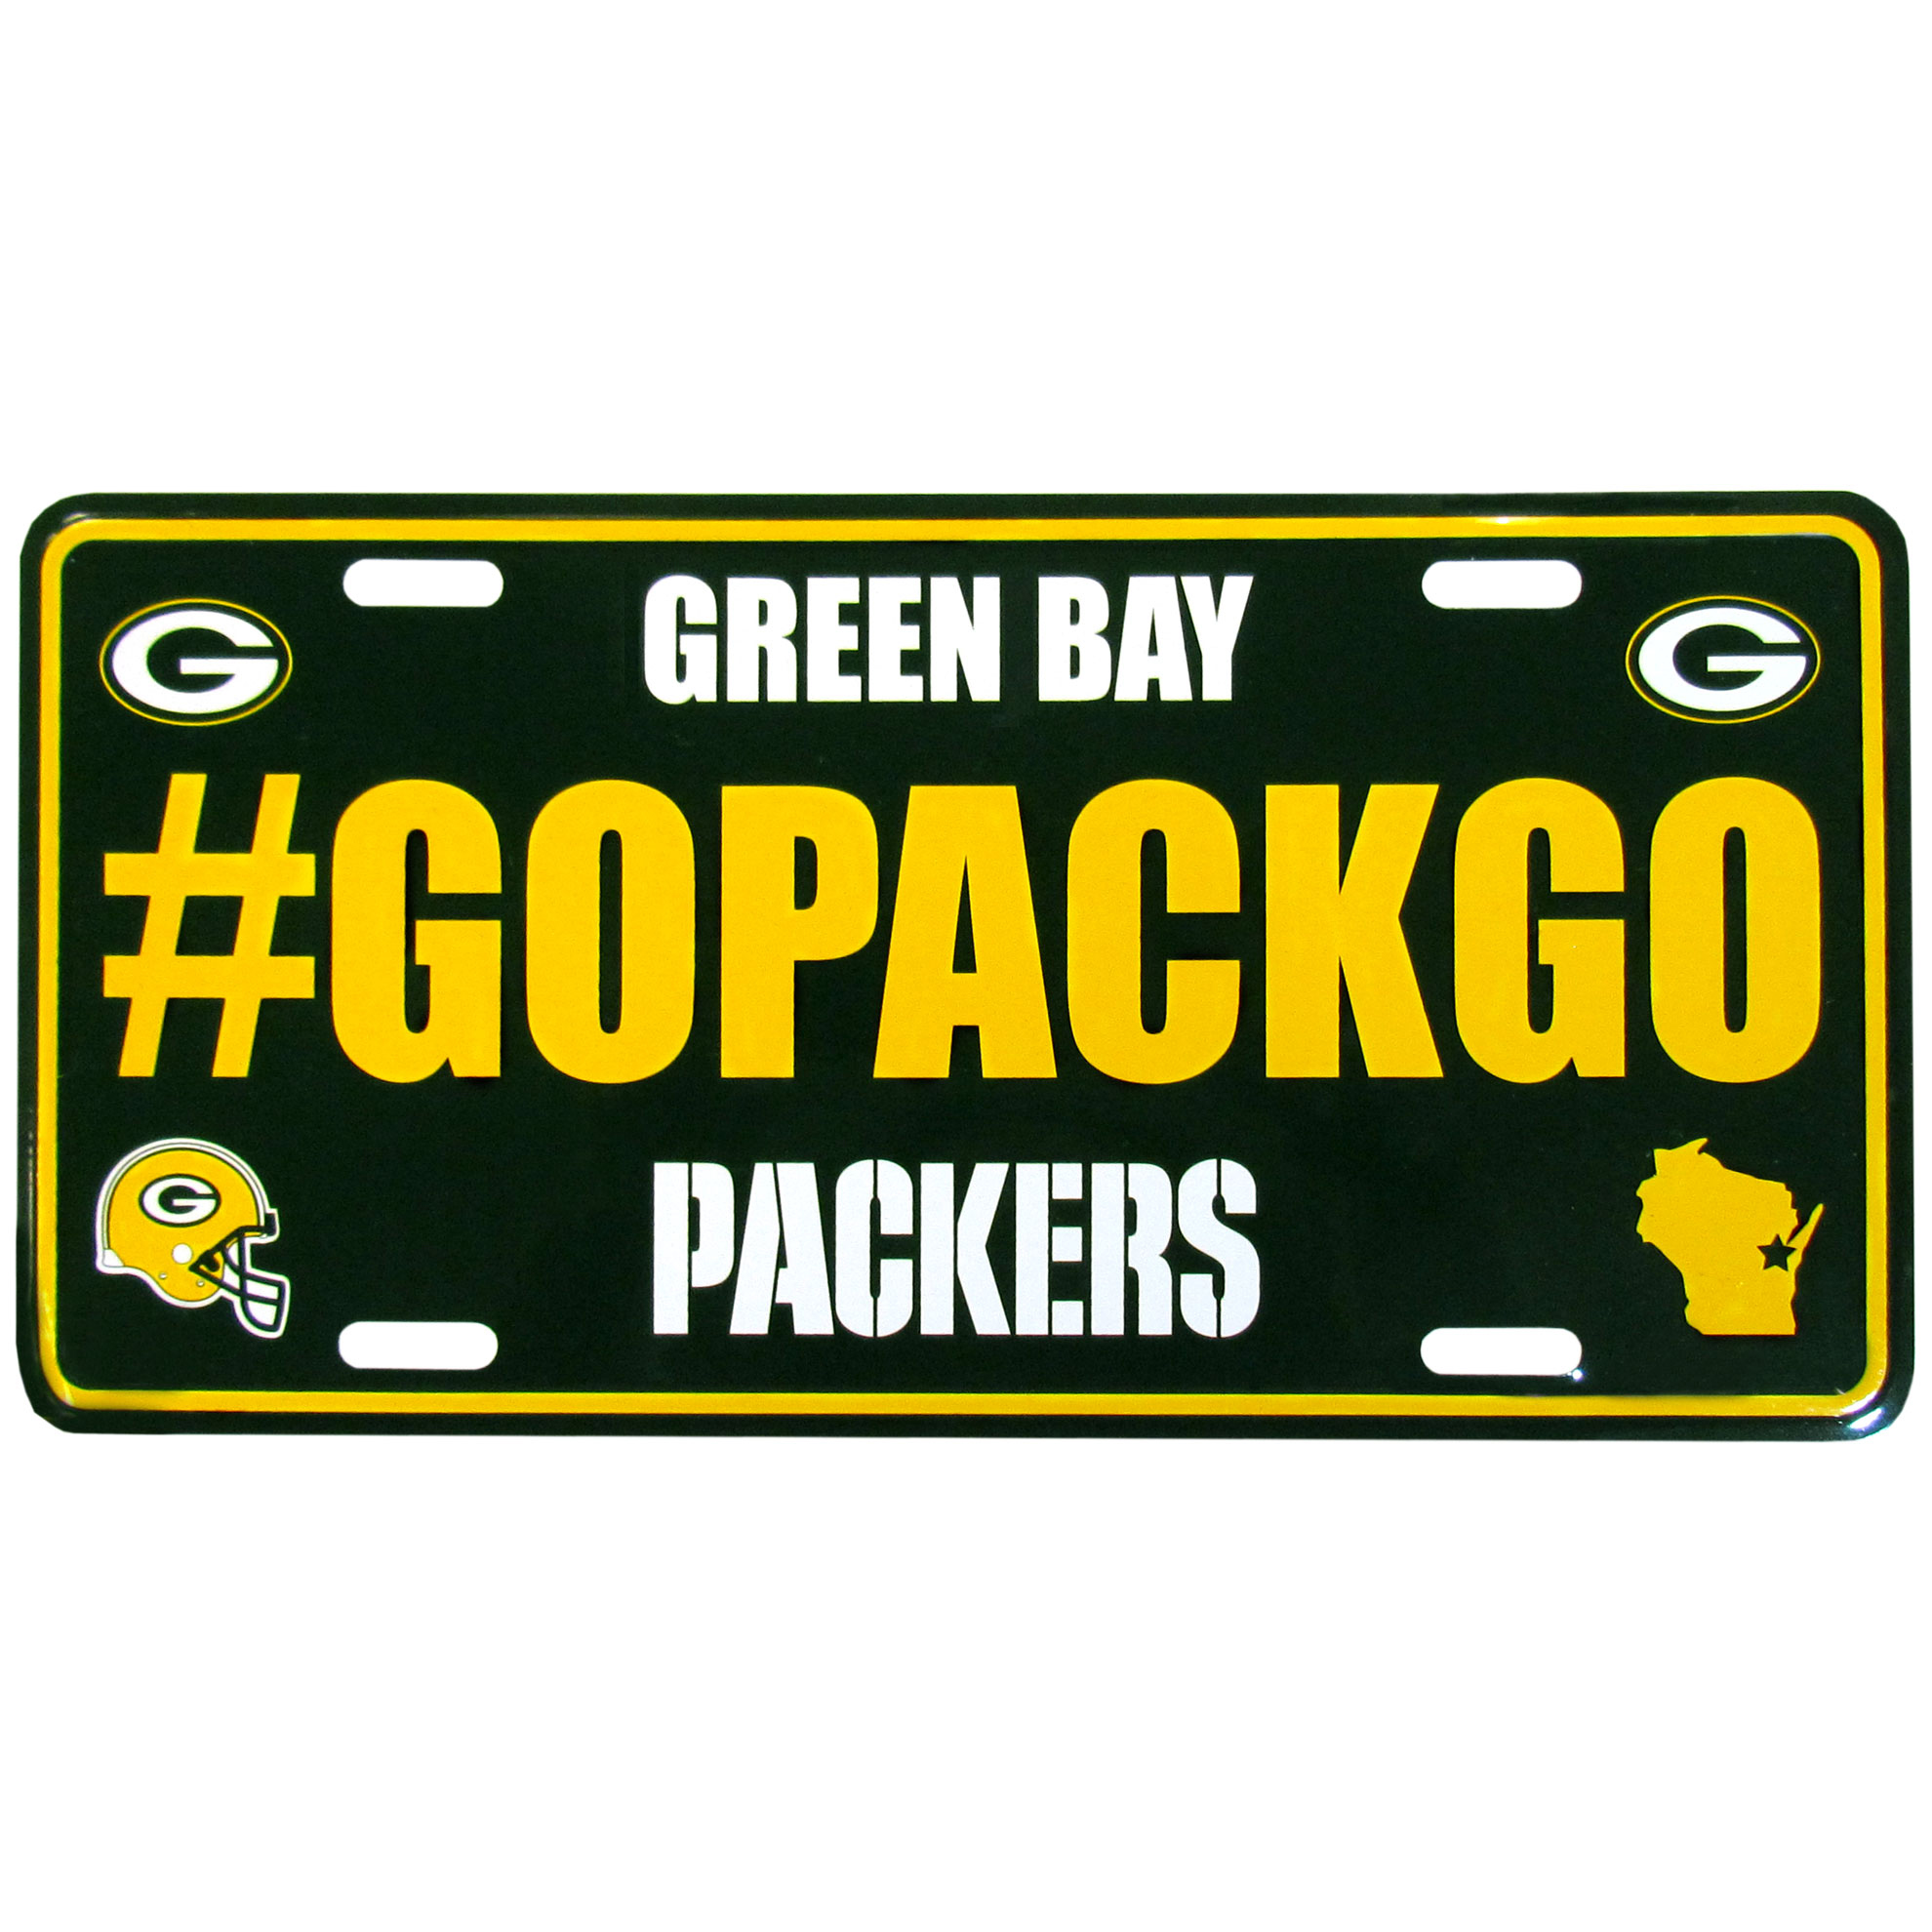 Green Bay Packers Hashtag License Plate - It's a hashtag world! Celebrate the Green Bay Packers with this stamped aluminum license plate with the most popular team hashtag! This bright license plate will look great on your vehicle or mounted in your fan cave.